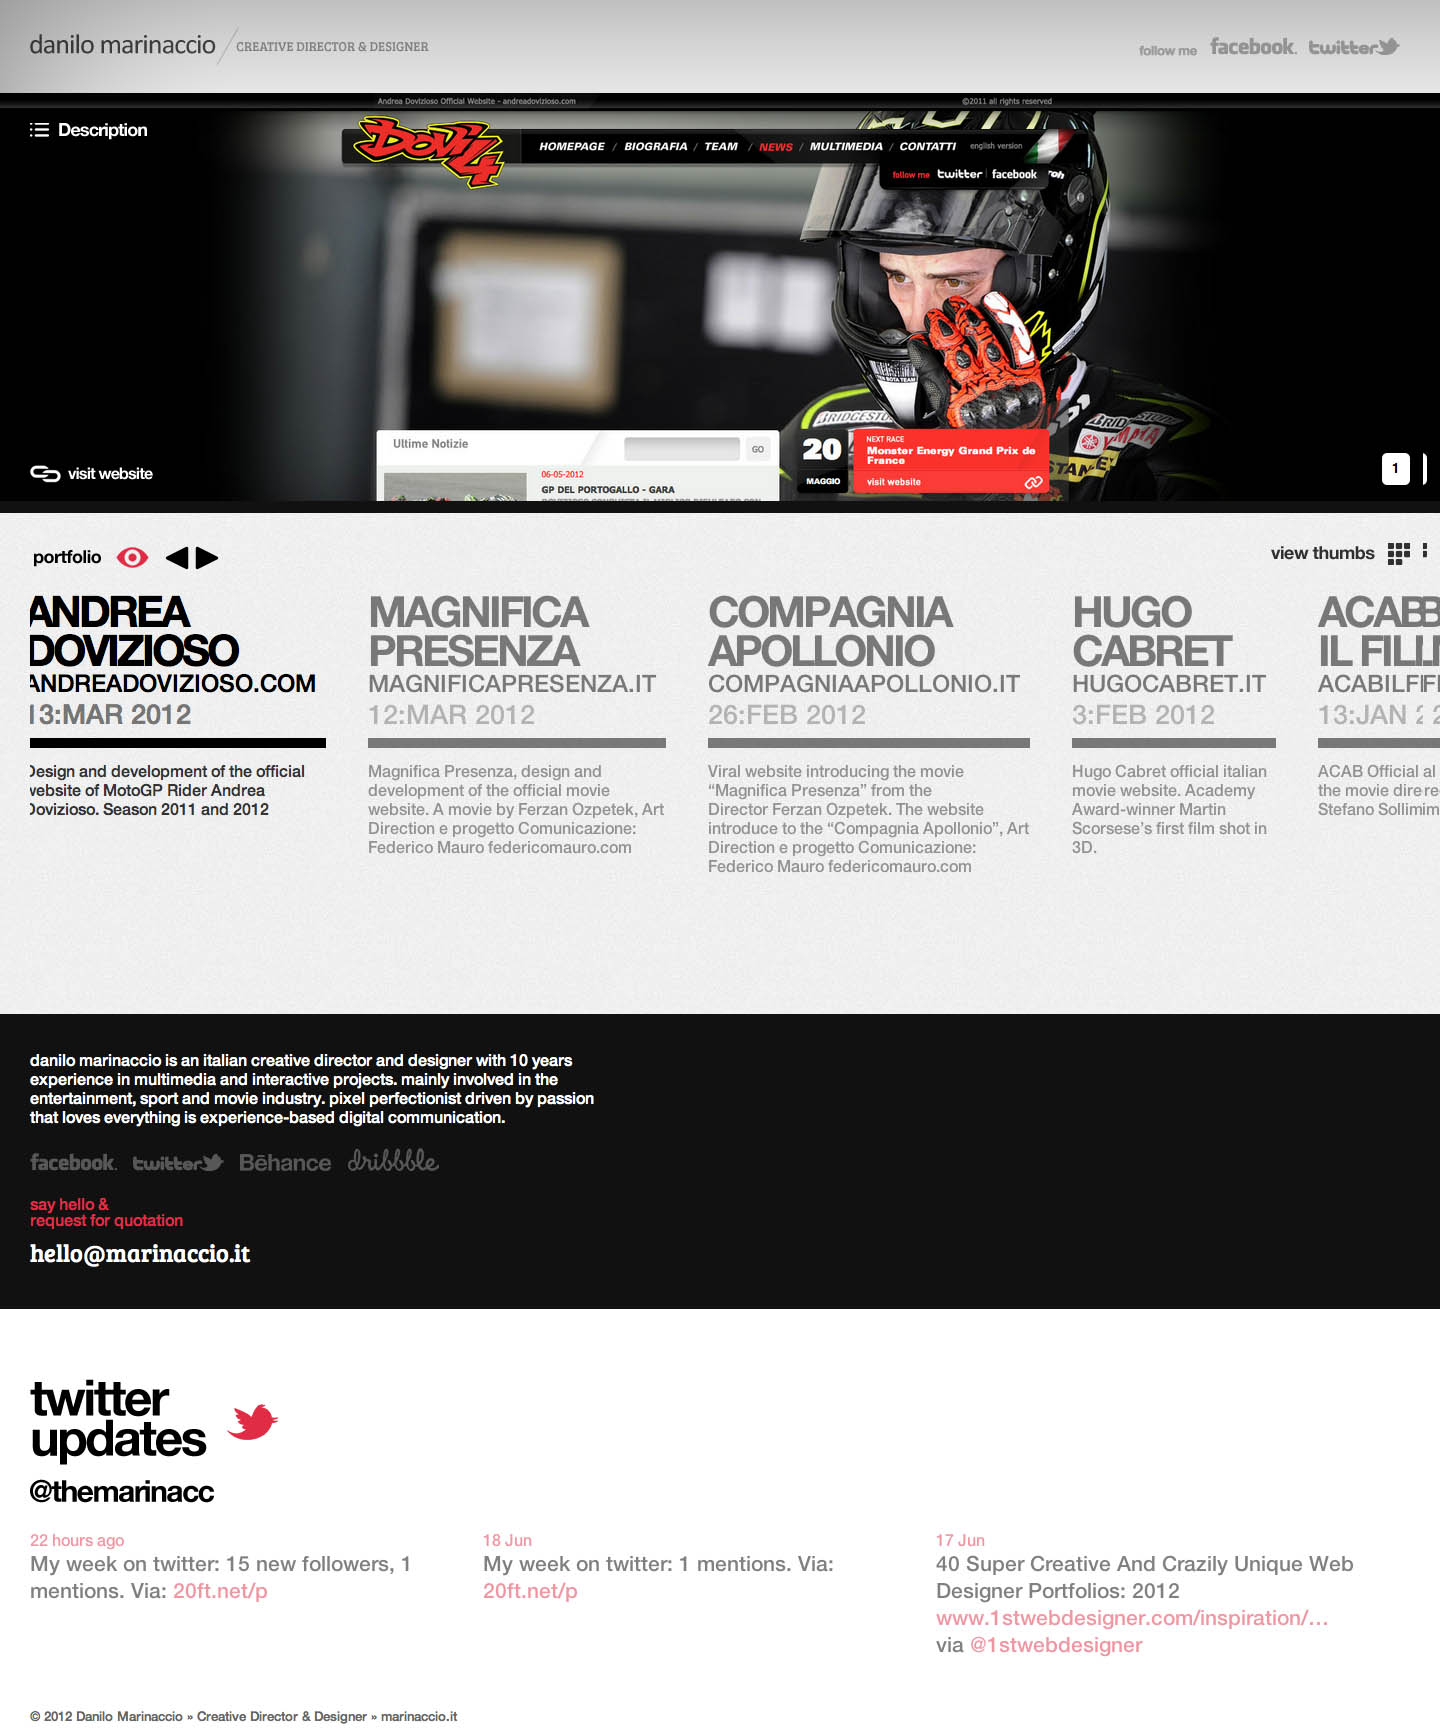 Danilo Marinaccio Website Screenshot